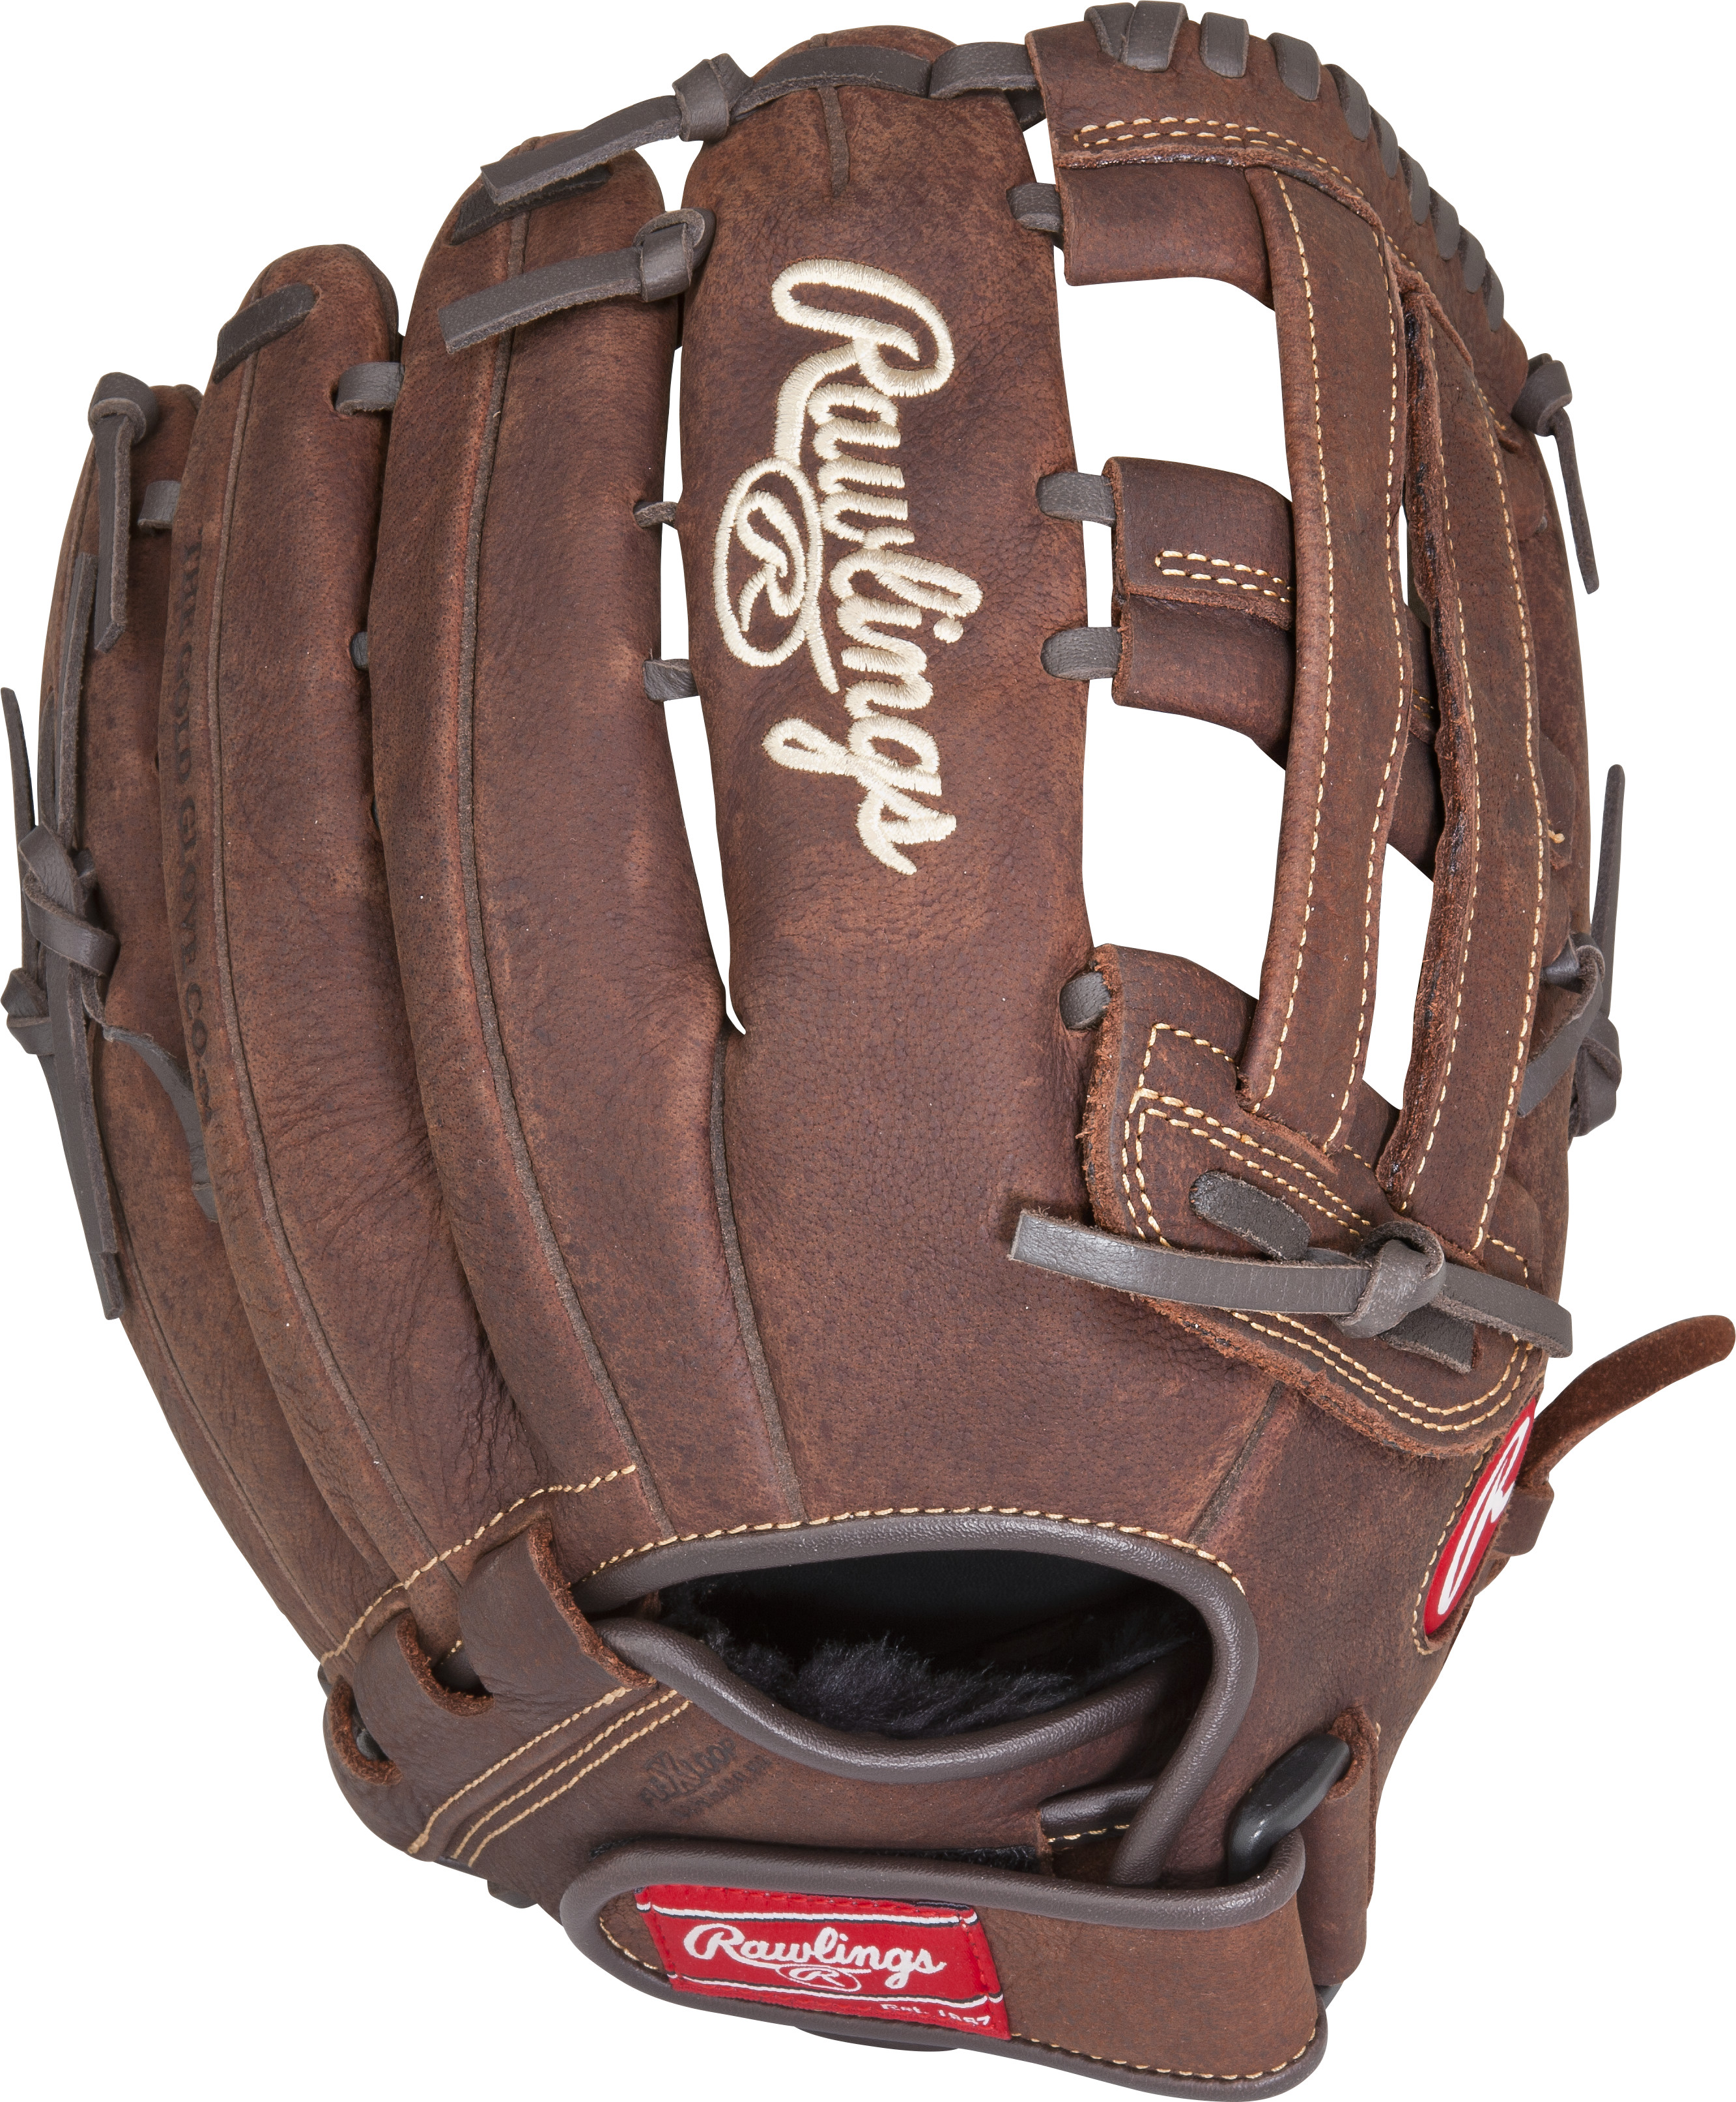 http://www.bestbatdeals.com/images/gloves/rawlings/P130HFL_back.jpg